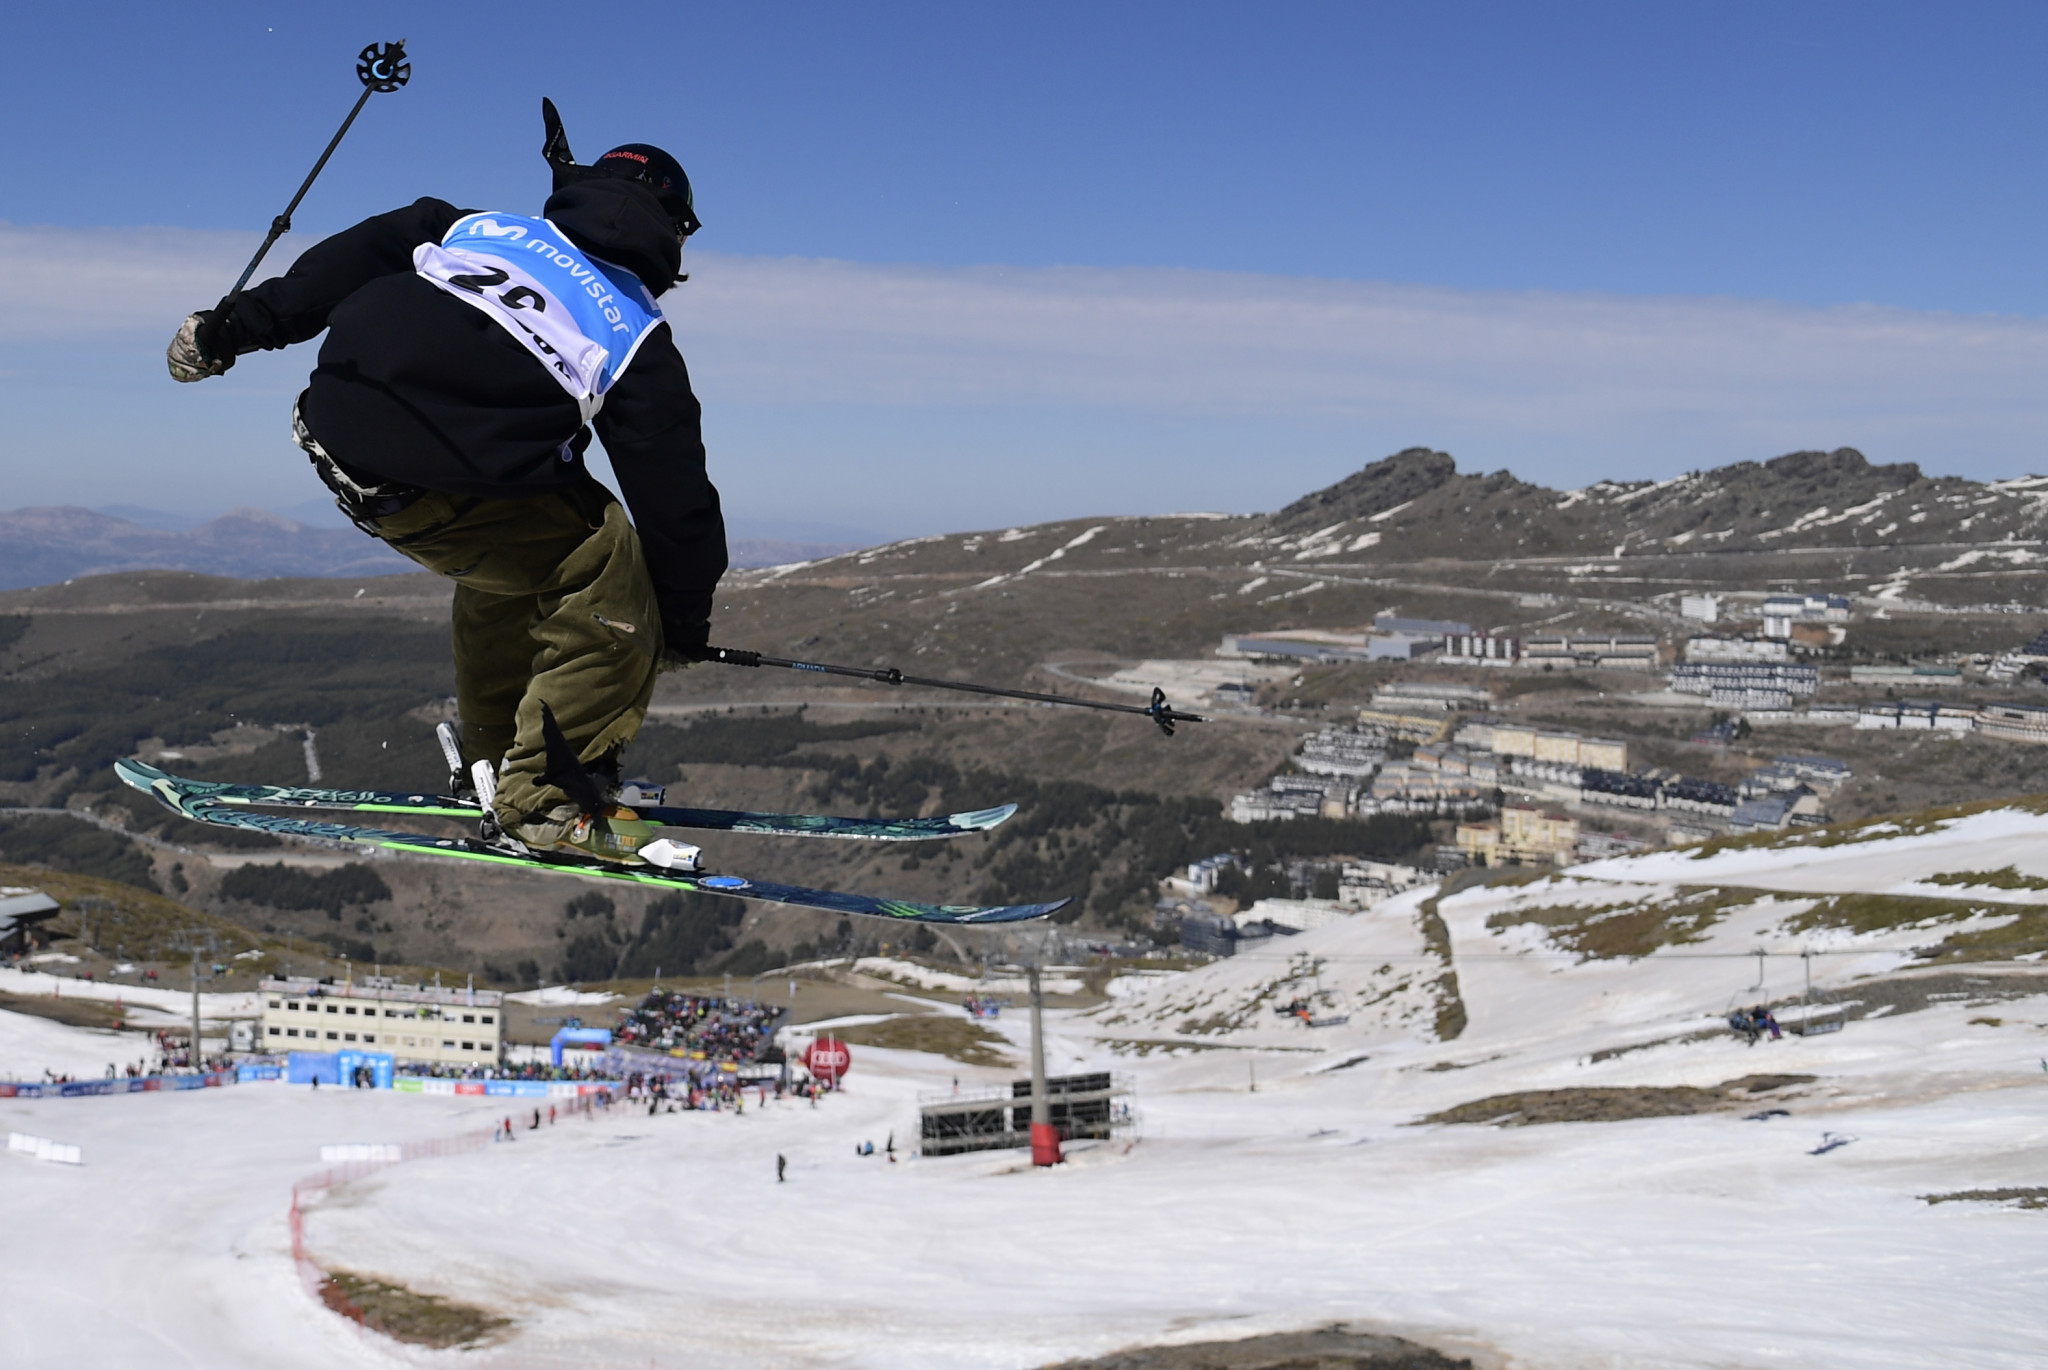 Harlaut wins second gold medal at Winter X-Games